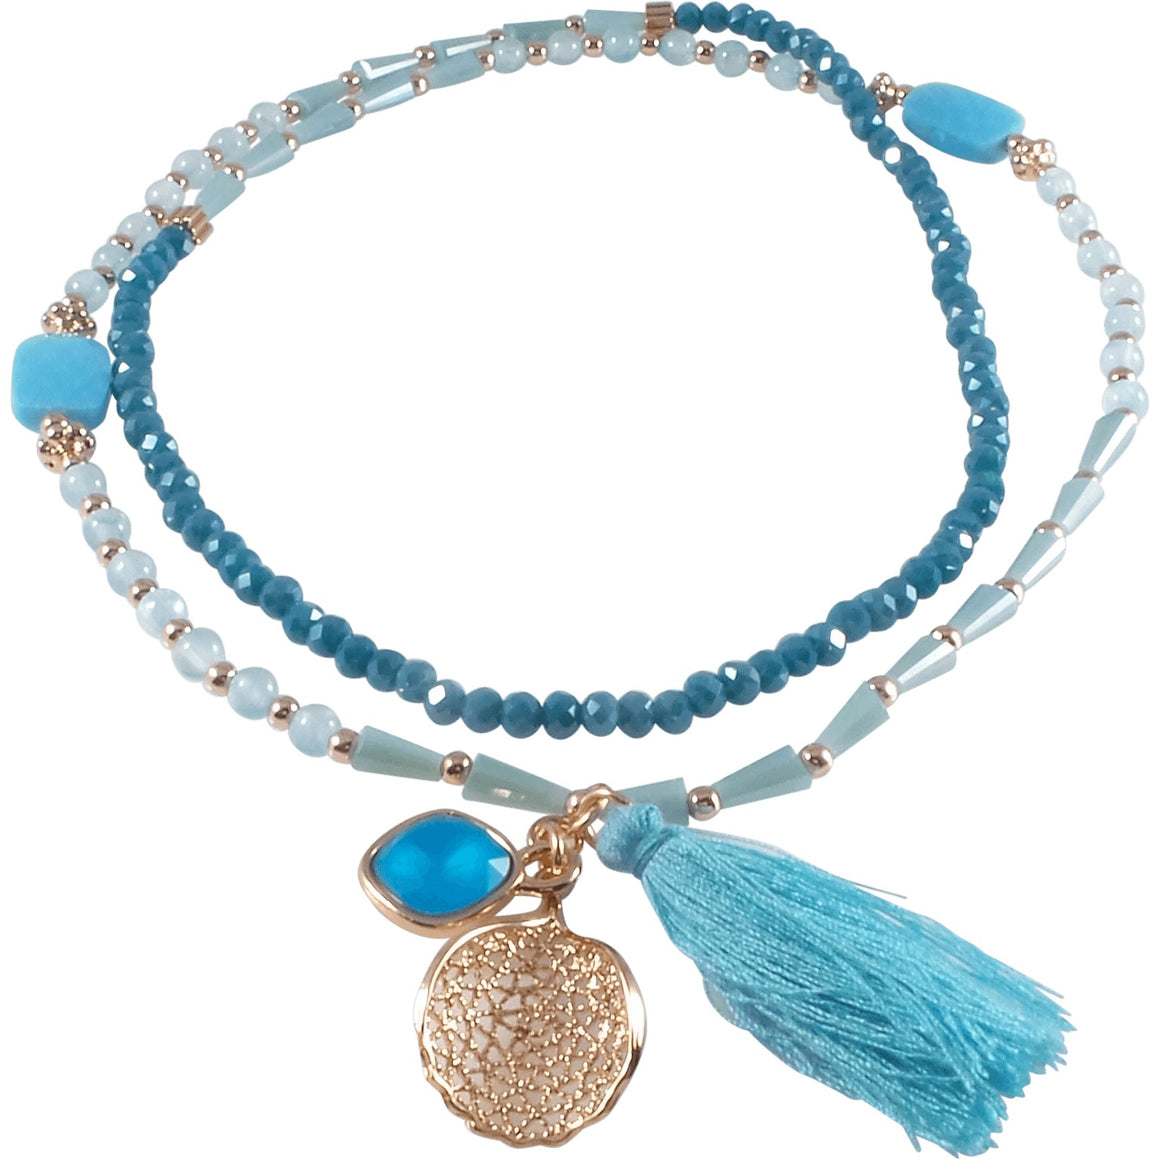 "Stretch Tassel Wrap Bracelet or Necklace 30"" Long Handcrafted Glass Beads Blue - Beads and Dangles"